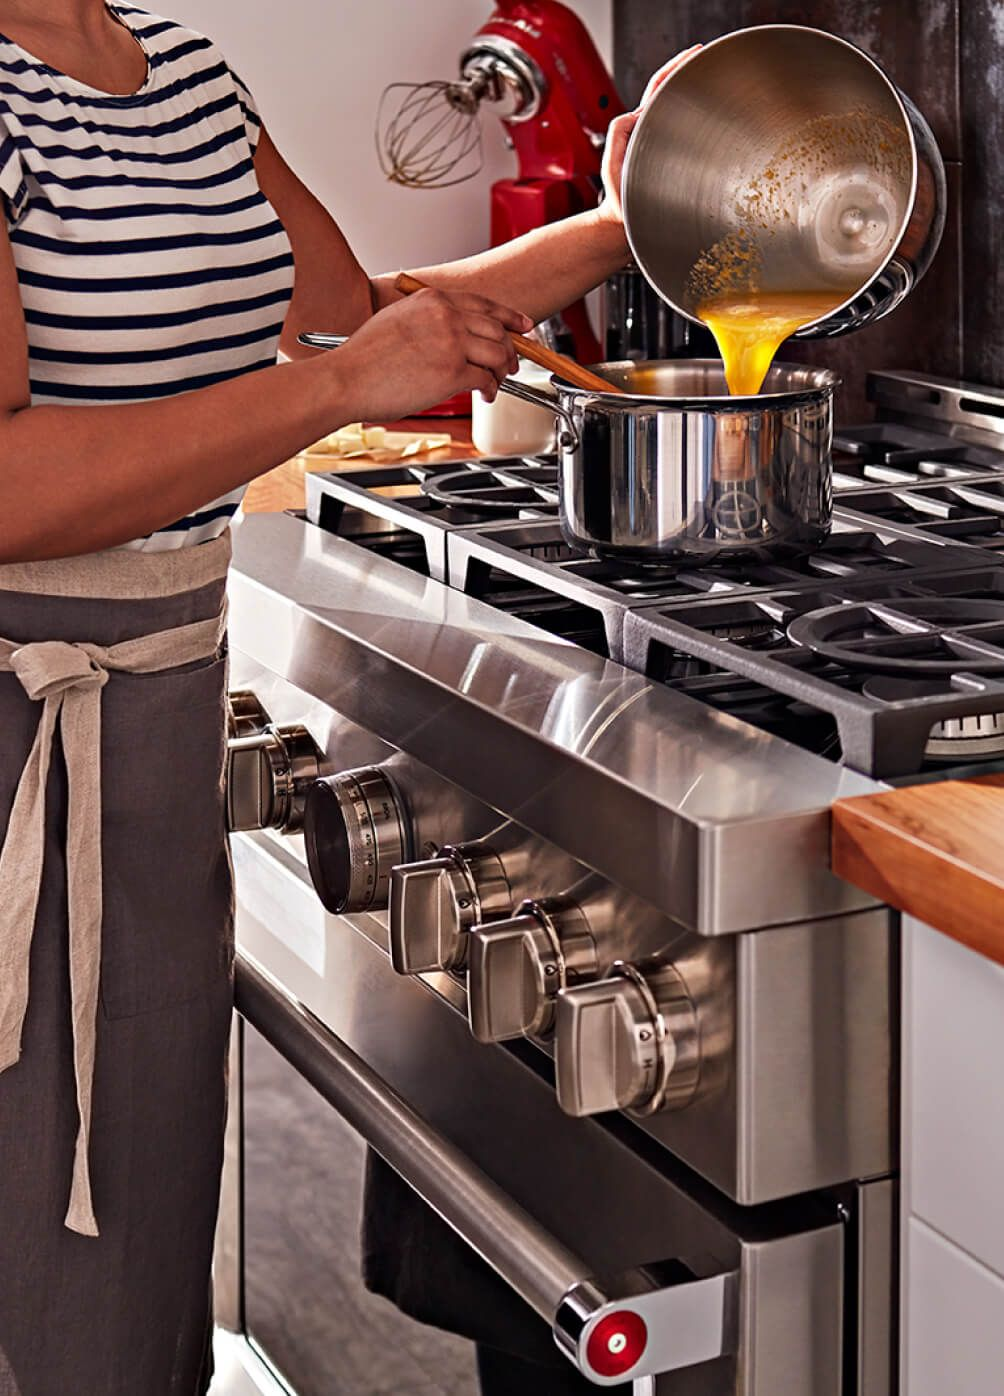 A woman cooks a sauce on a commercial-style range stovetop.